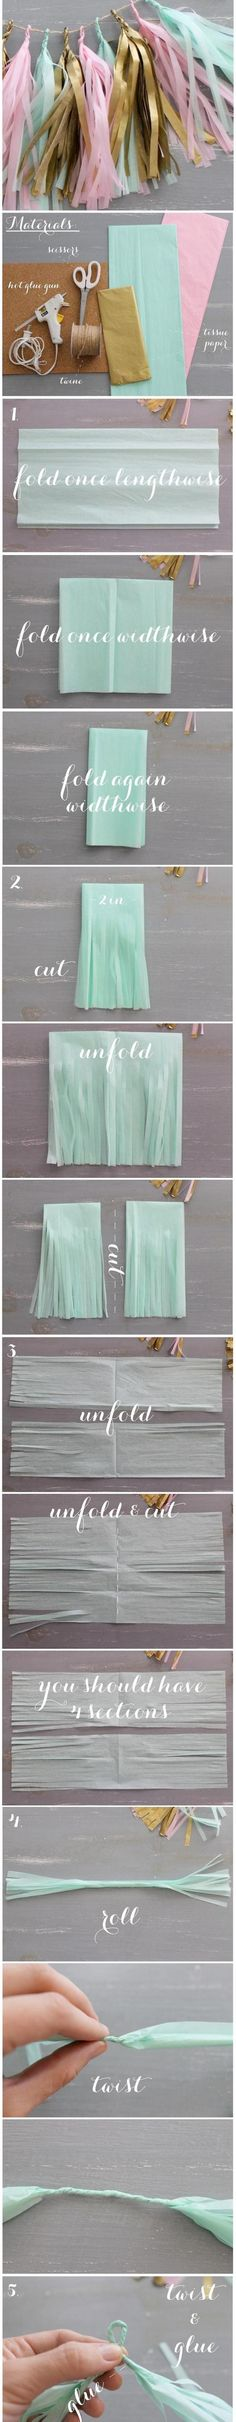 top-10-diy-party-crafts_04